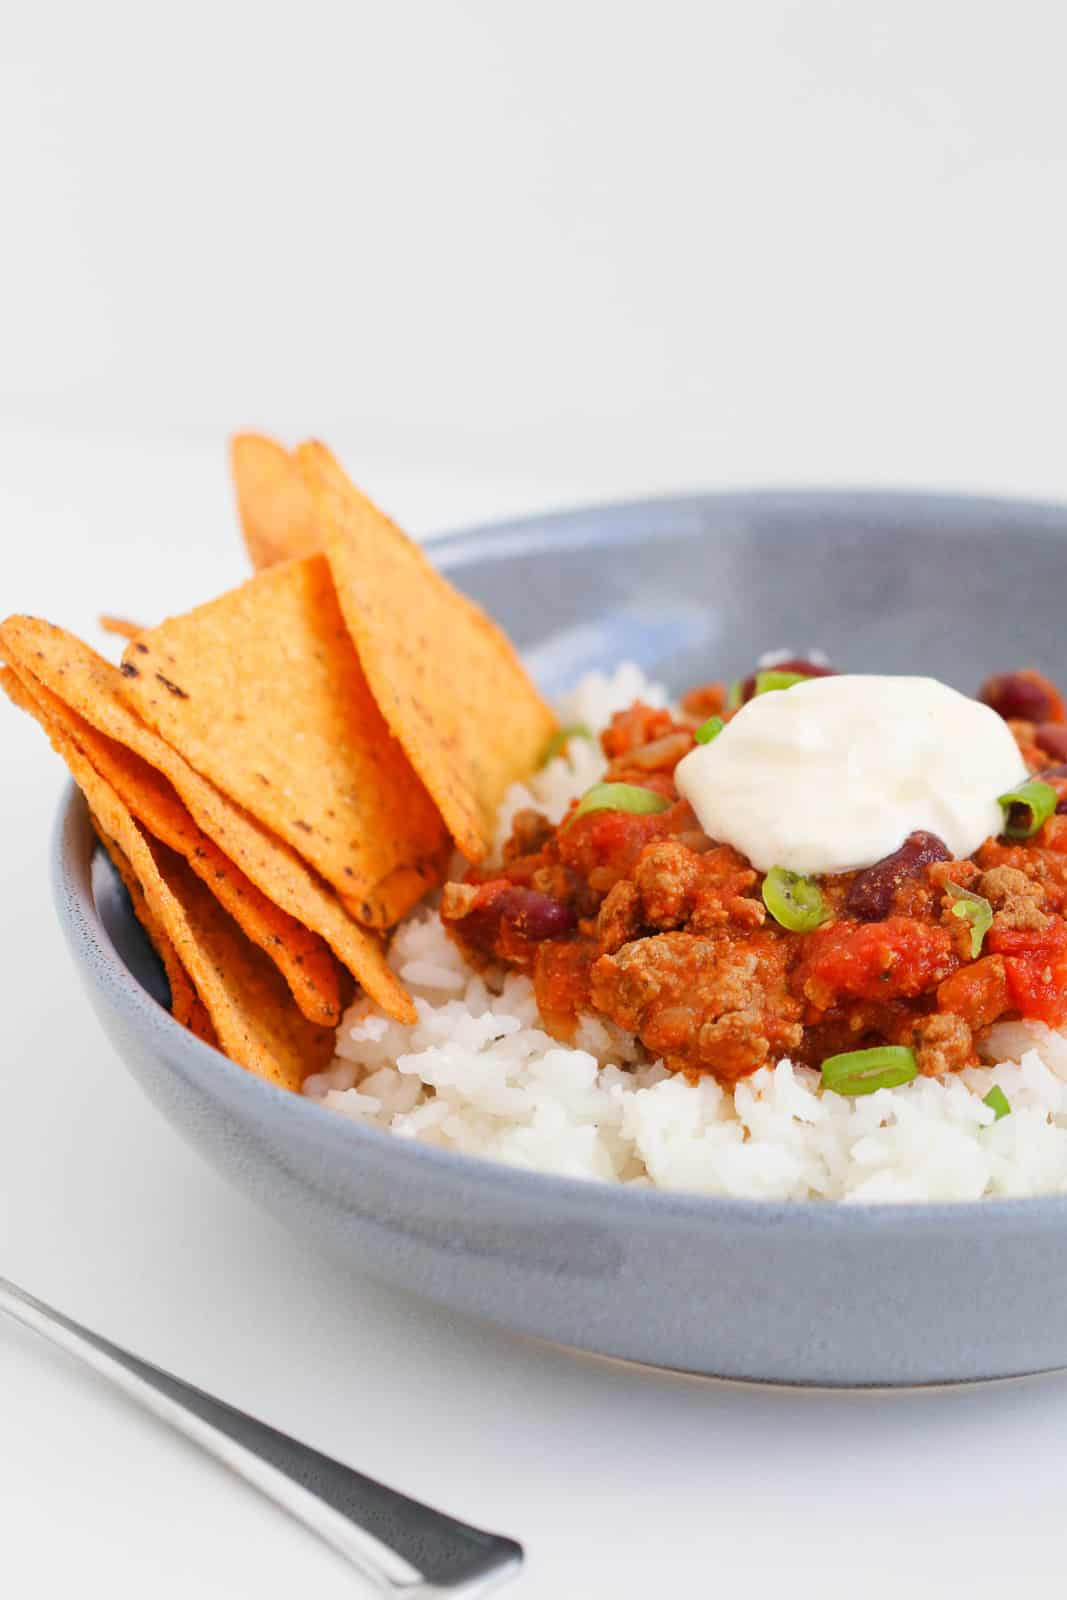 Corn chips in a bowl of slow cooker chilli con carne with rice, spring onions and sour cream.